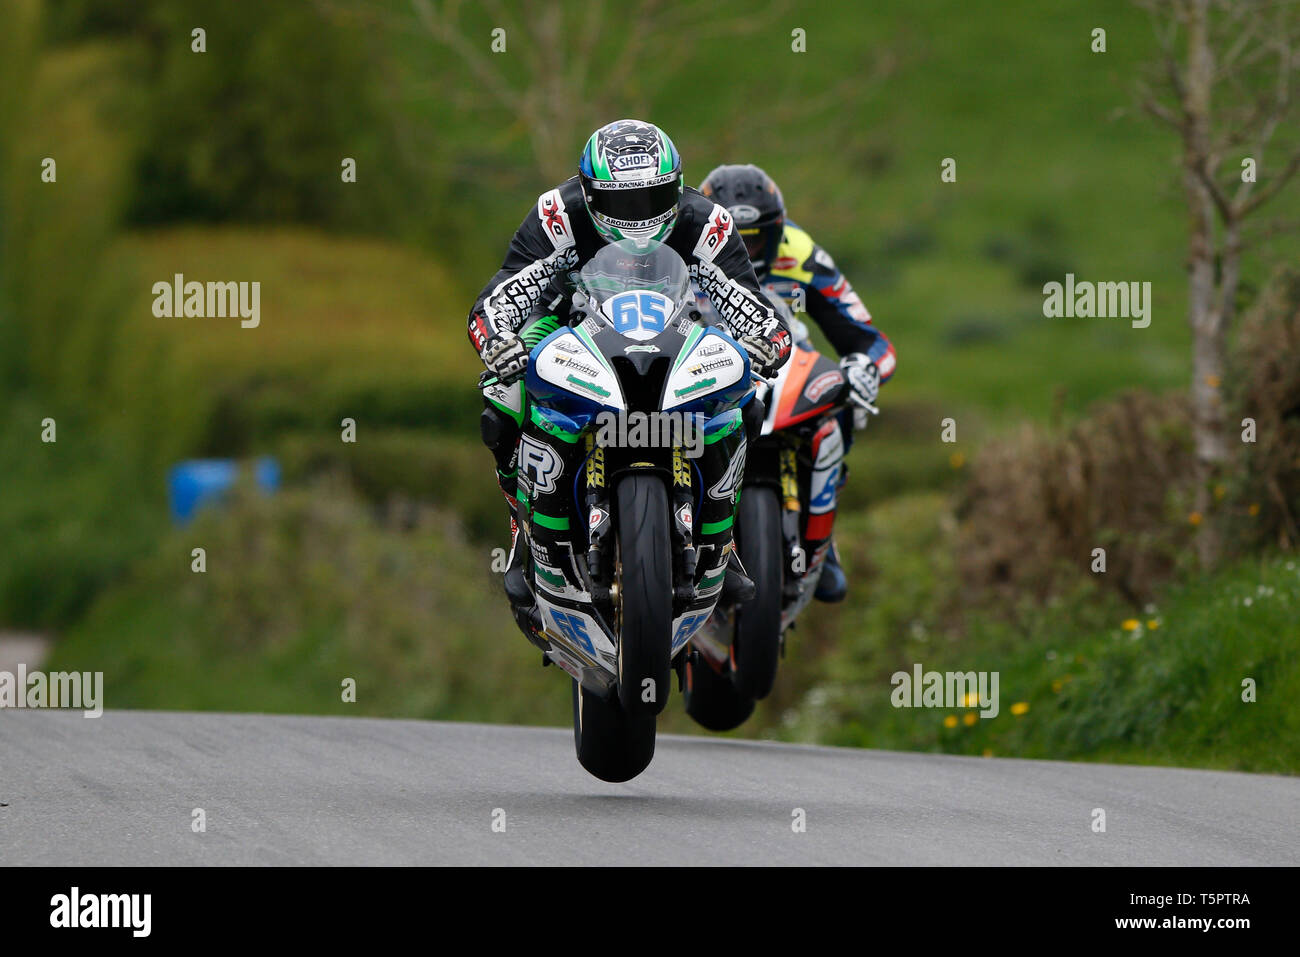 Orritor Circuit, Cookstown, Northern Ireland  26th Apr, 2019